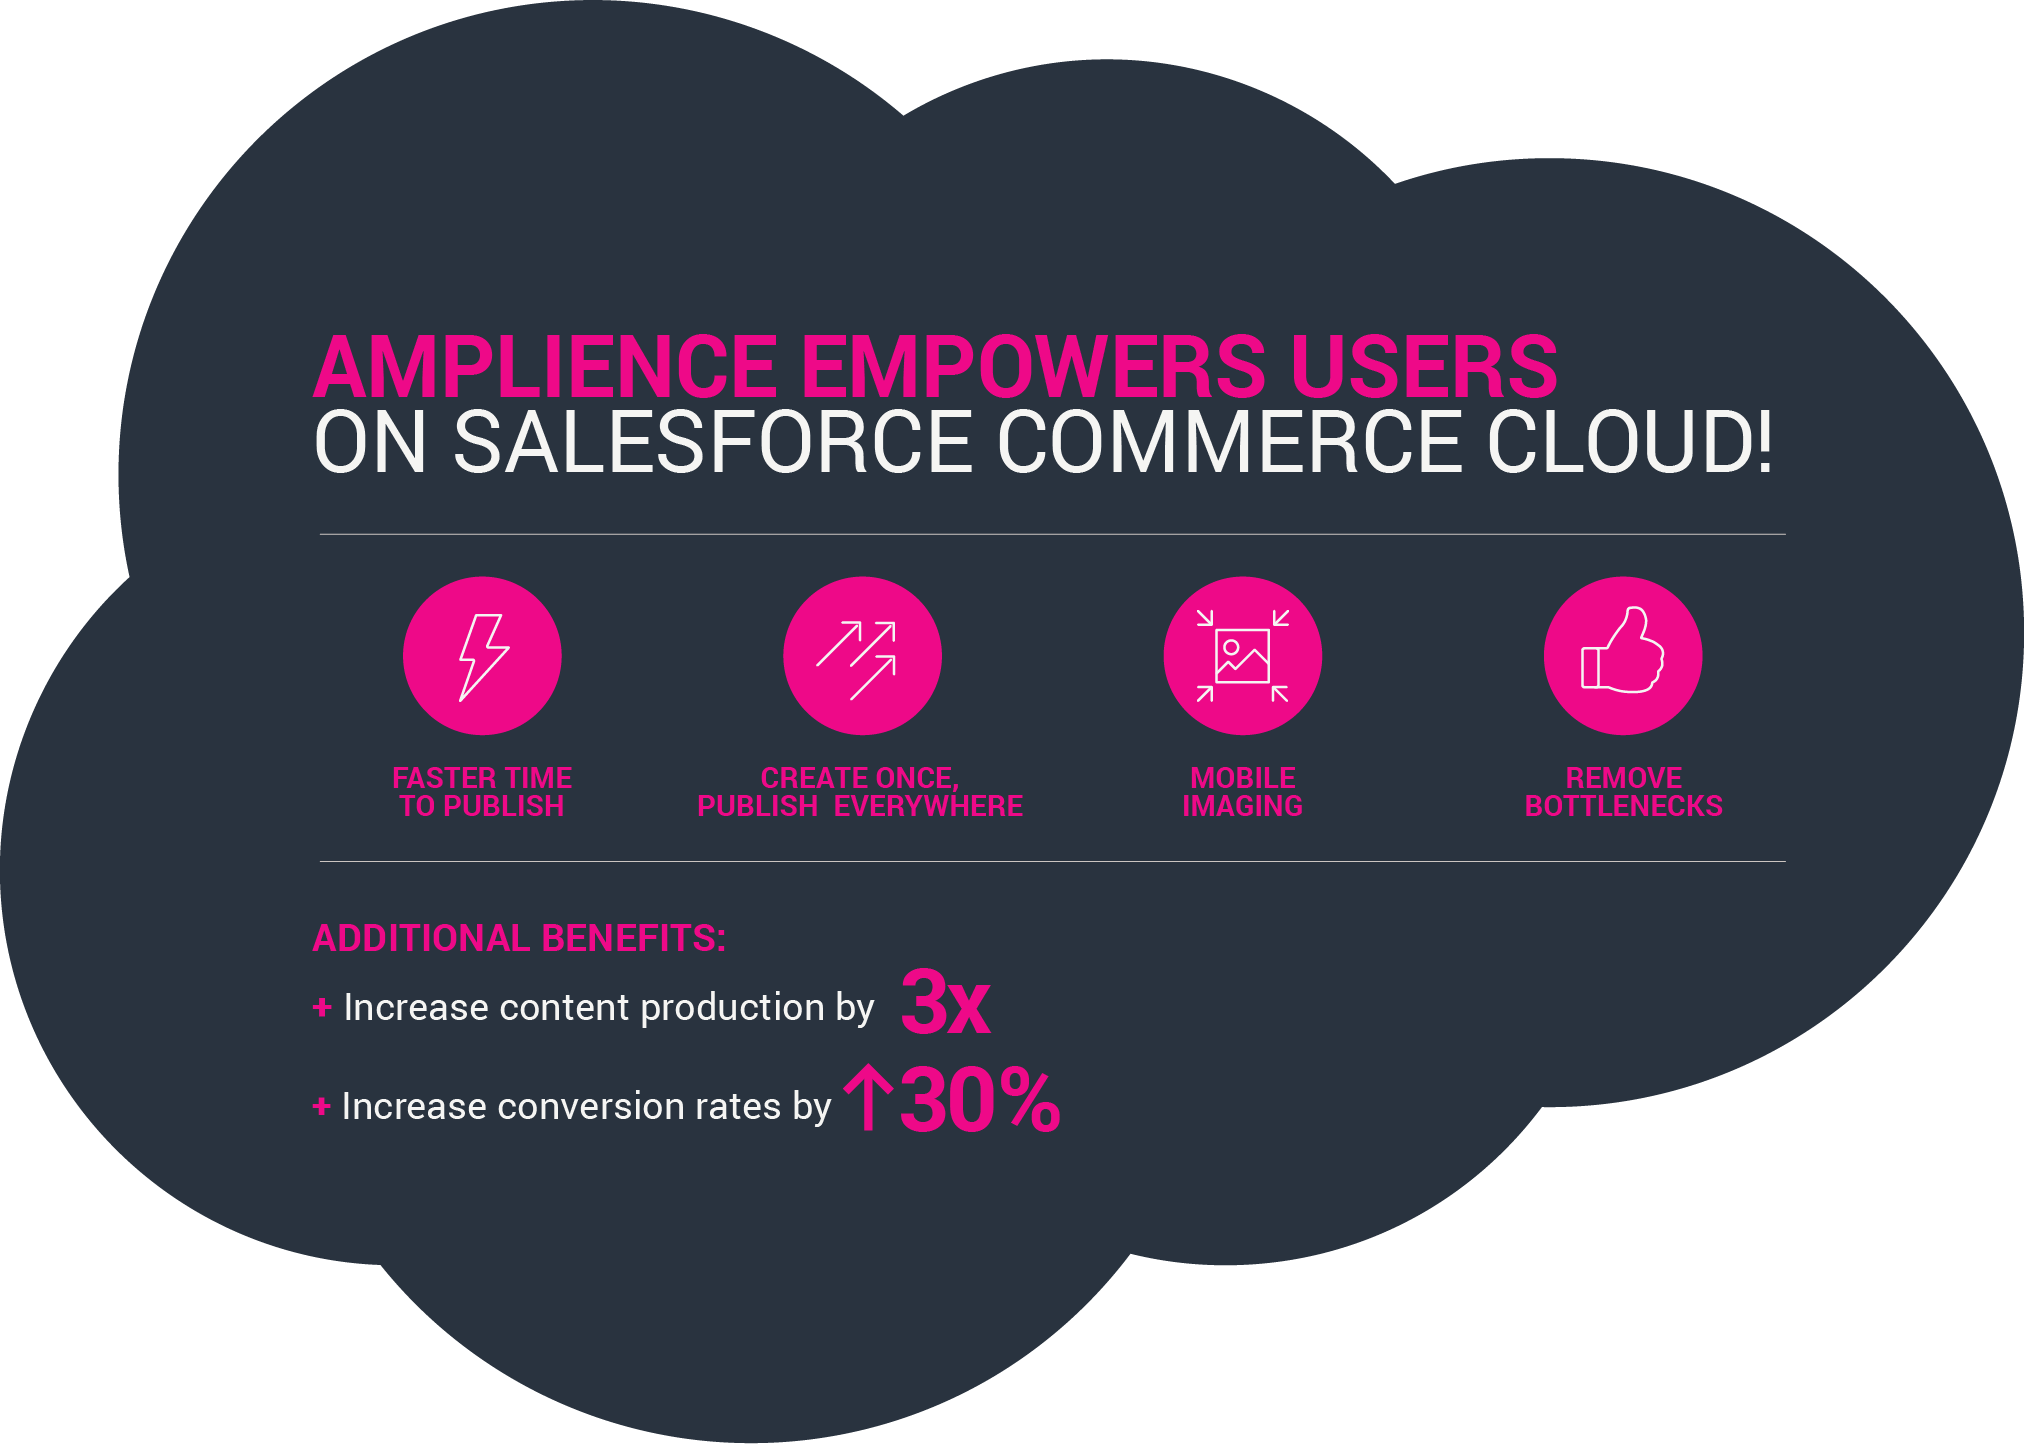 SalesforceInfographic2